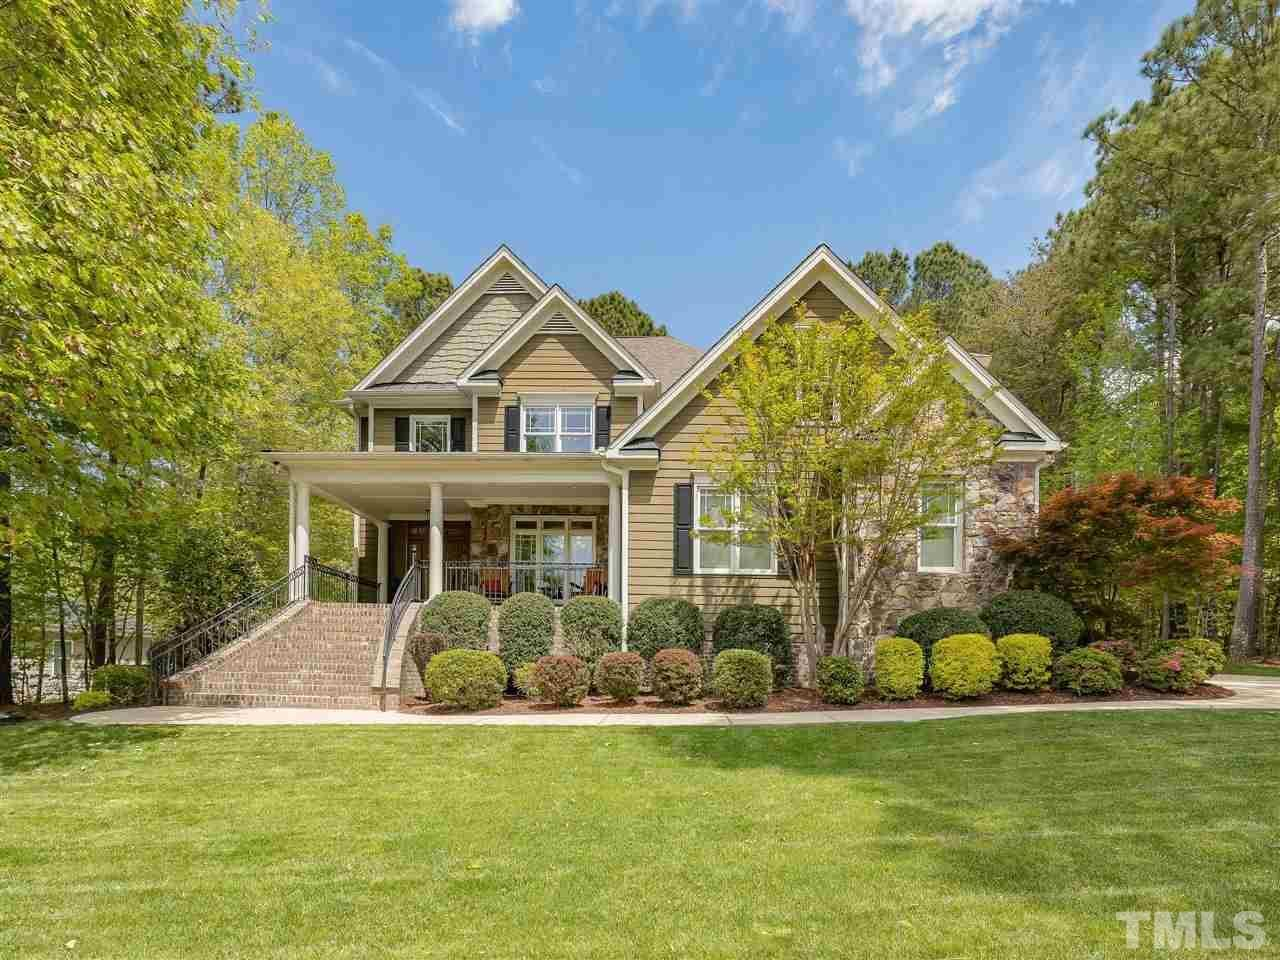 Photo of 3988 Cashmere Lane, Youngsville, NC 27596 (MLS # 2379561)